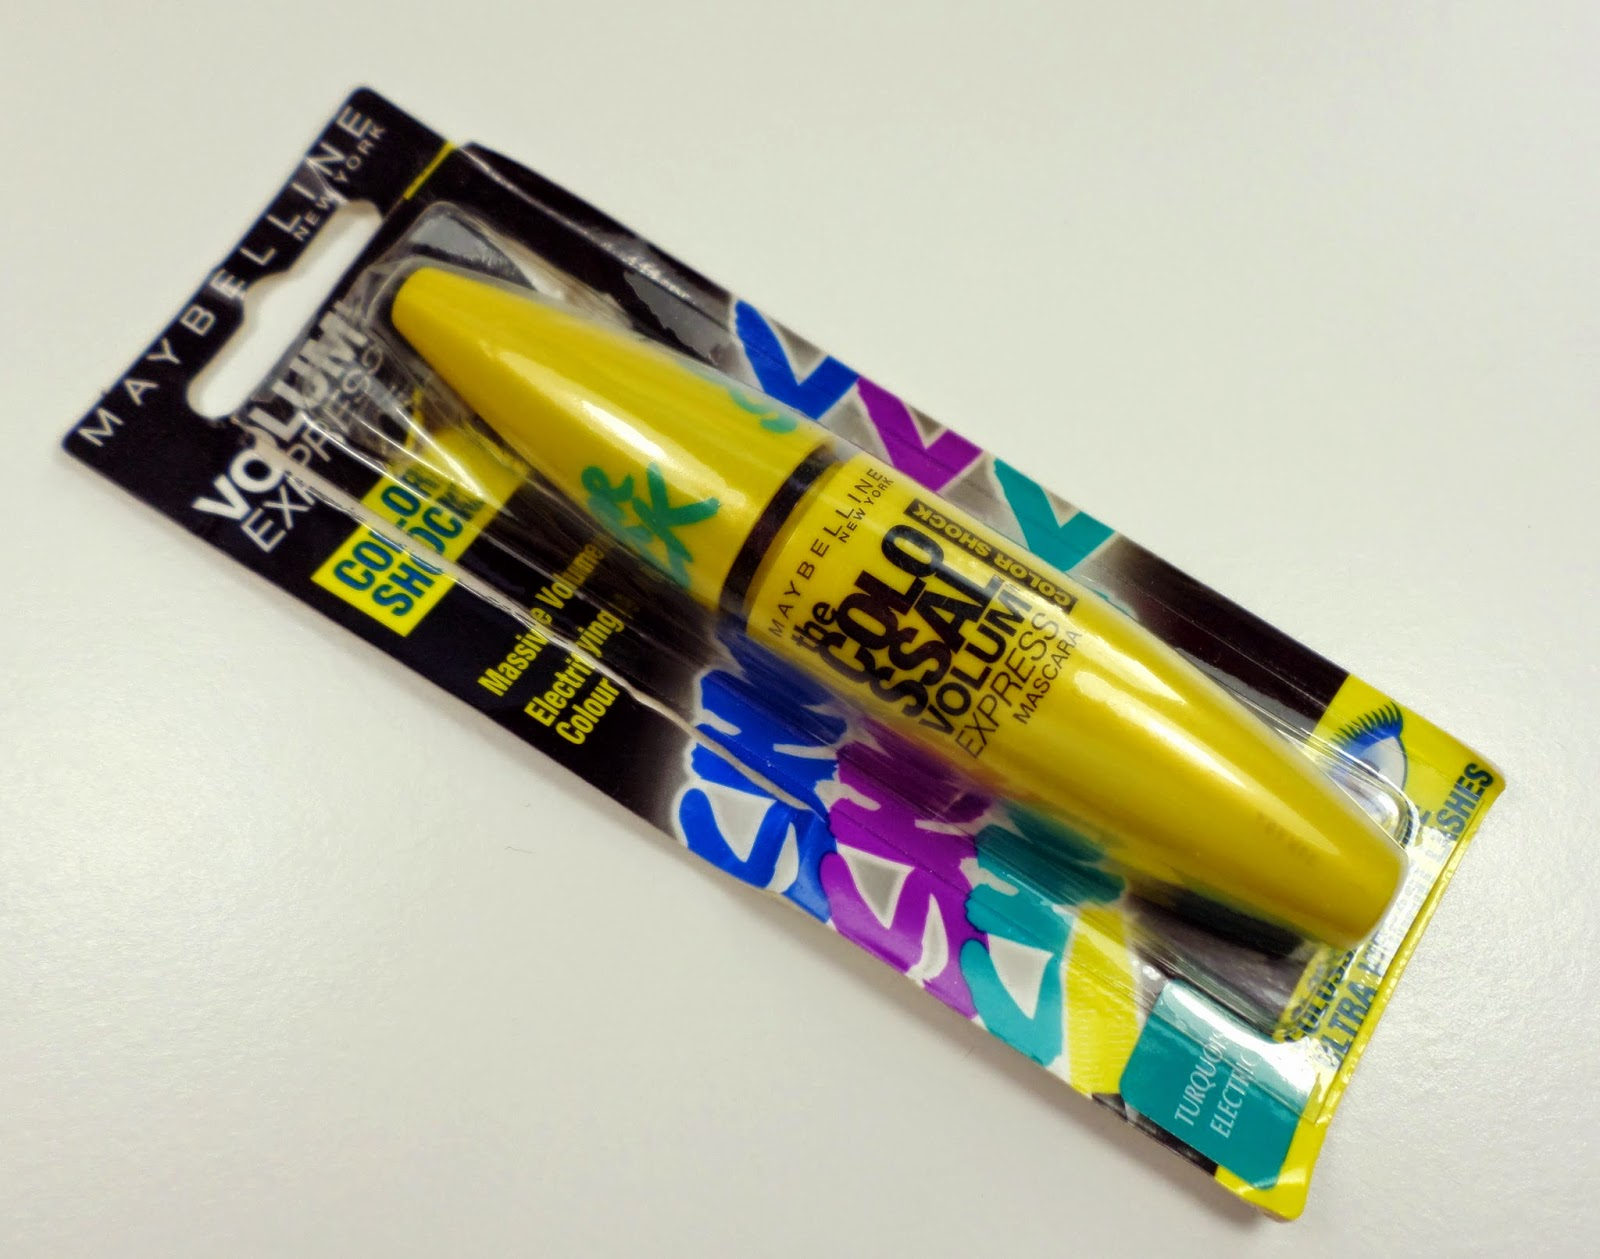 Maybelline Color Shock Colossal Volum' Mascara Electric Teal or Turquoise Electric